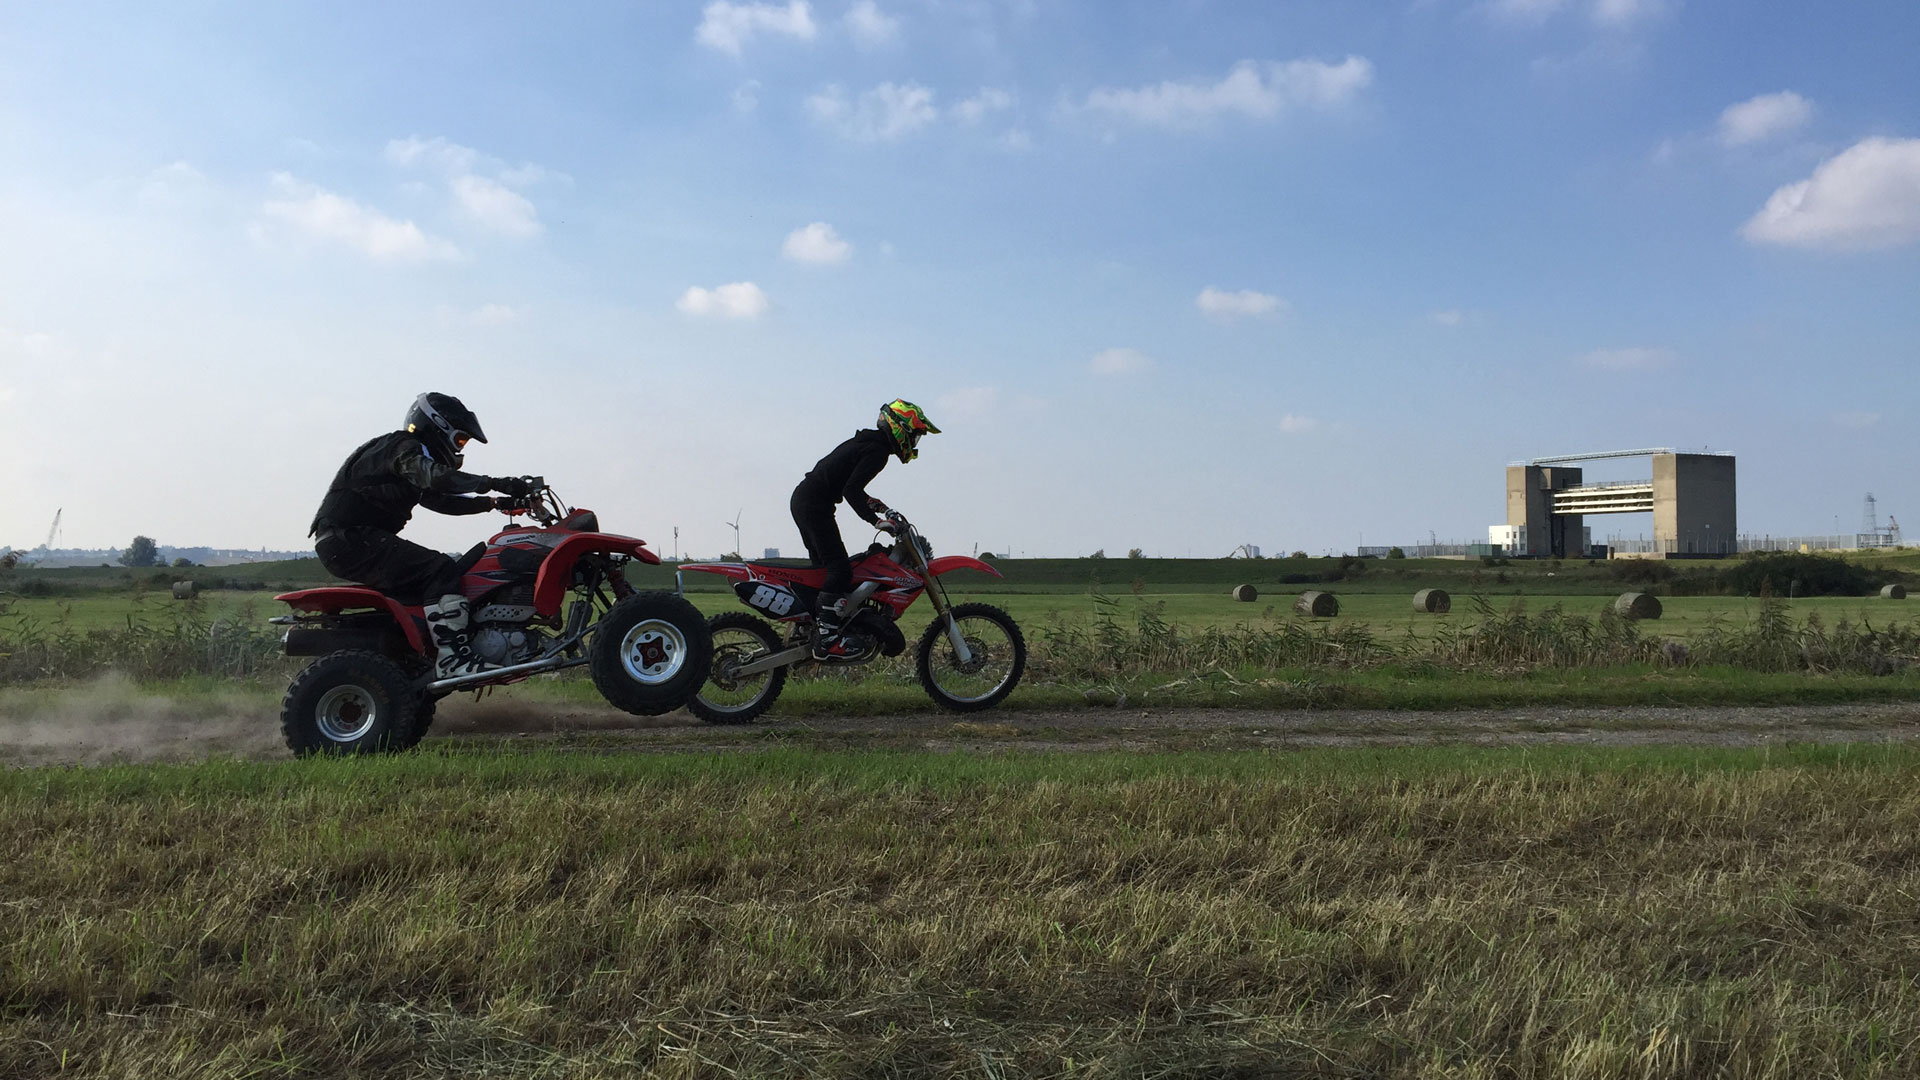 Filming the bike chase sequence